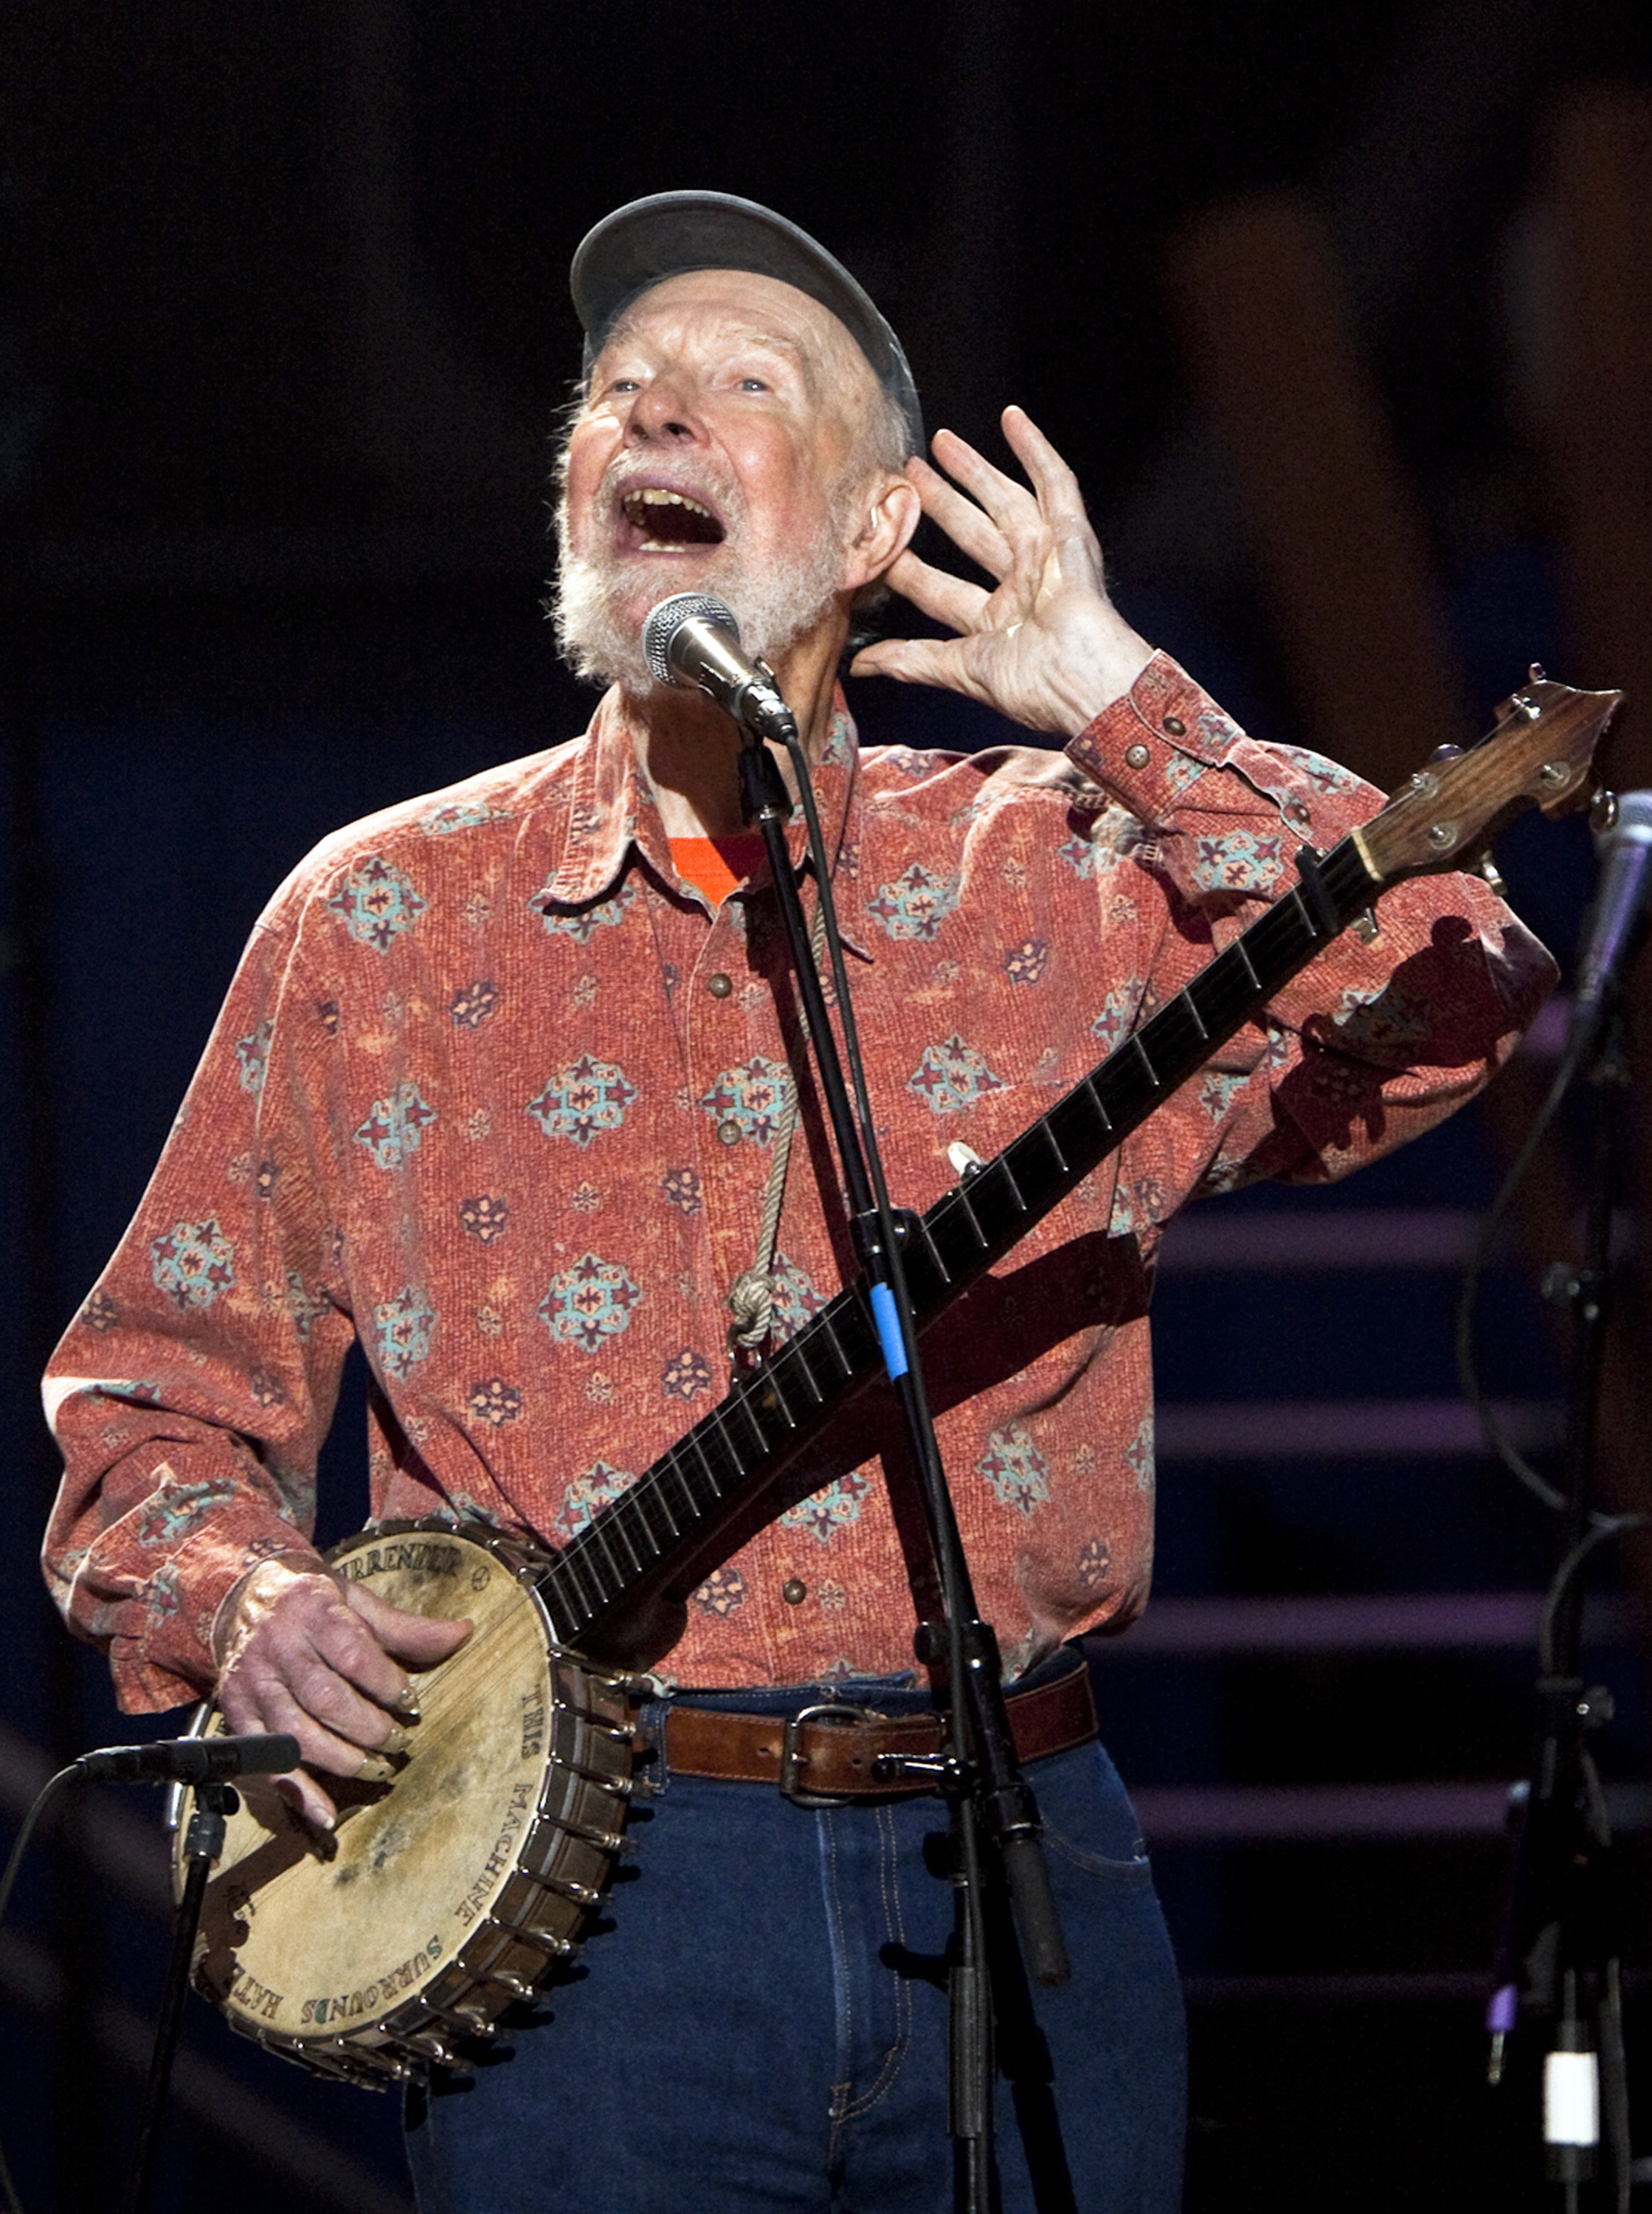 Pete Seeger performing during his 90th birthday event in New York's Madison Square Garden in 2009. He spent his life championing folk music.